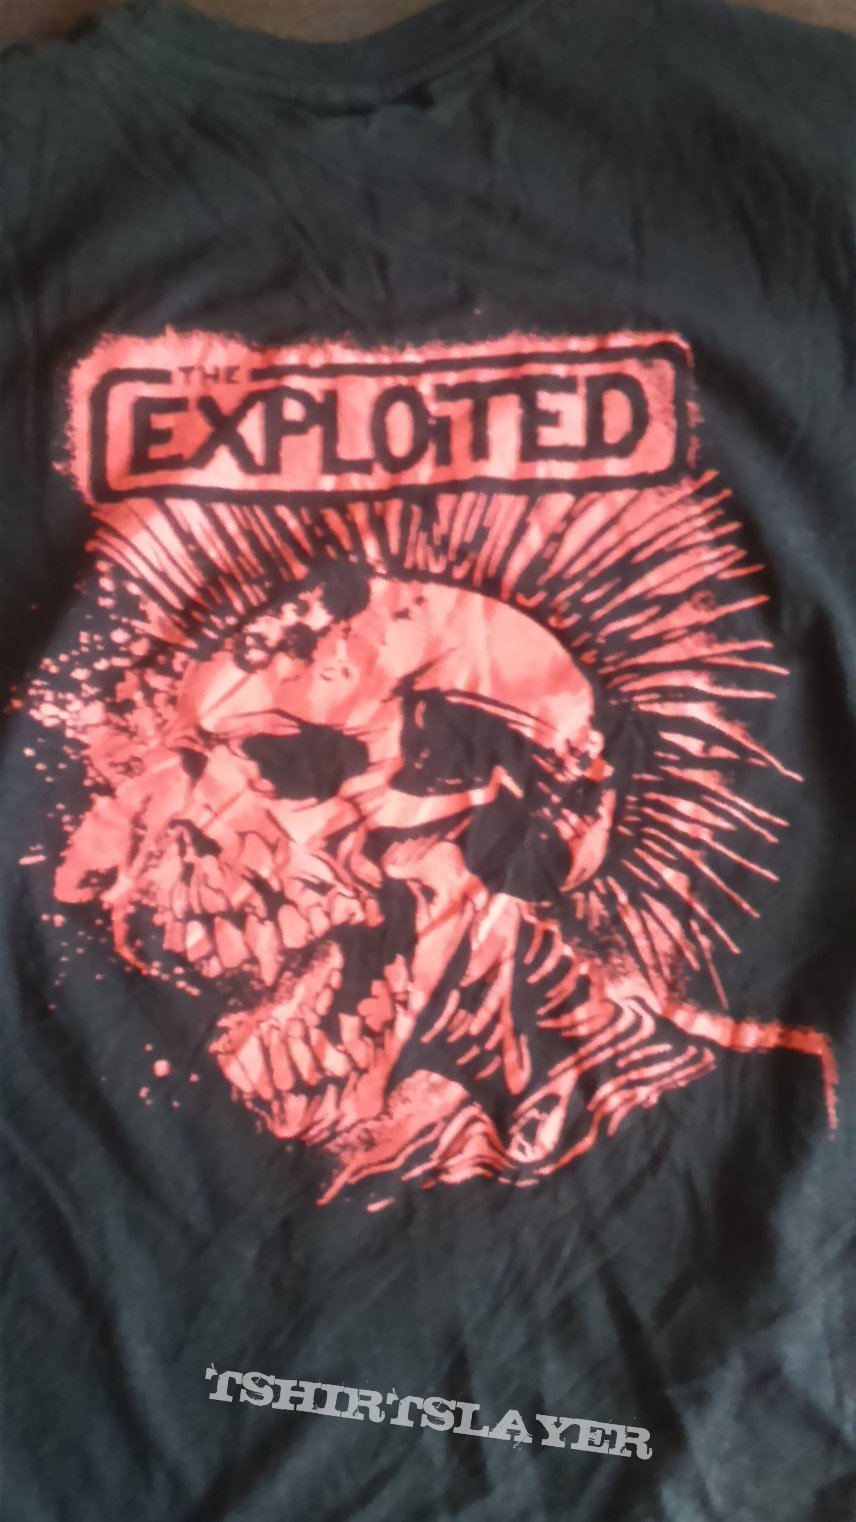 The Exploited-Beat the Bastards T-shirt